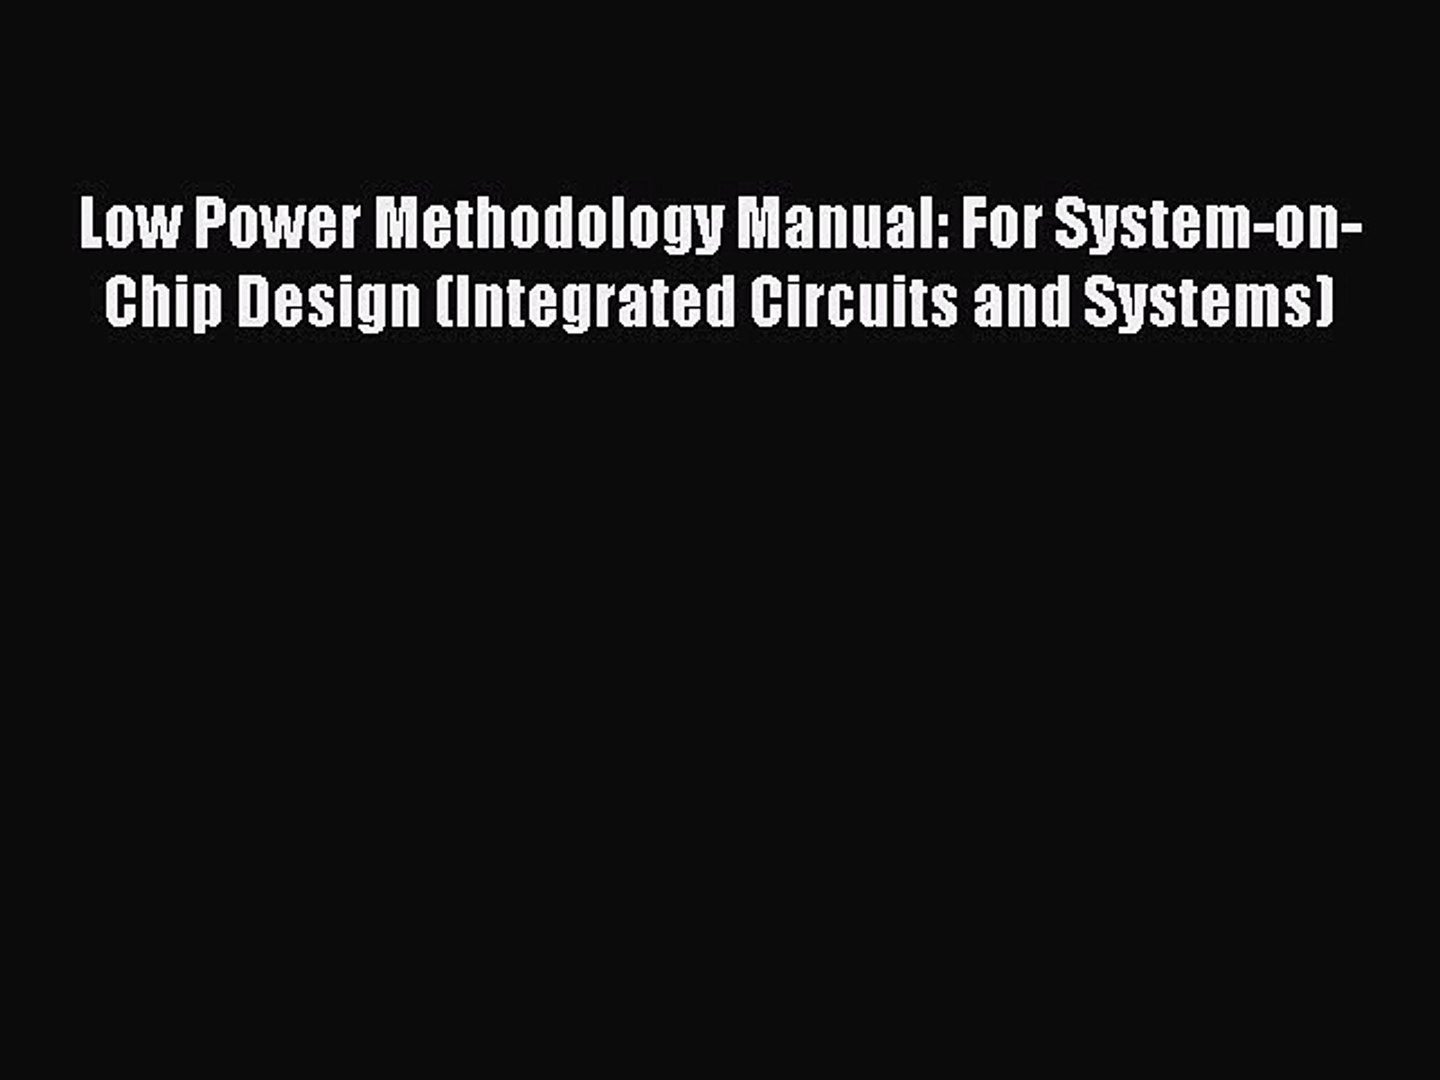 Low Power Methodology Manual: For System-on-Chip Design (Integrated Circuits and Systems)